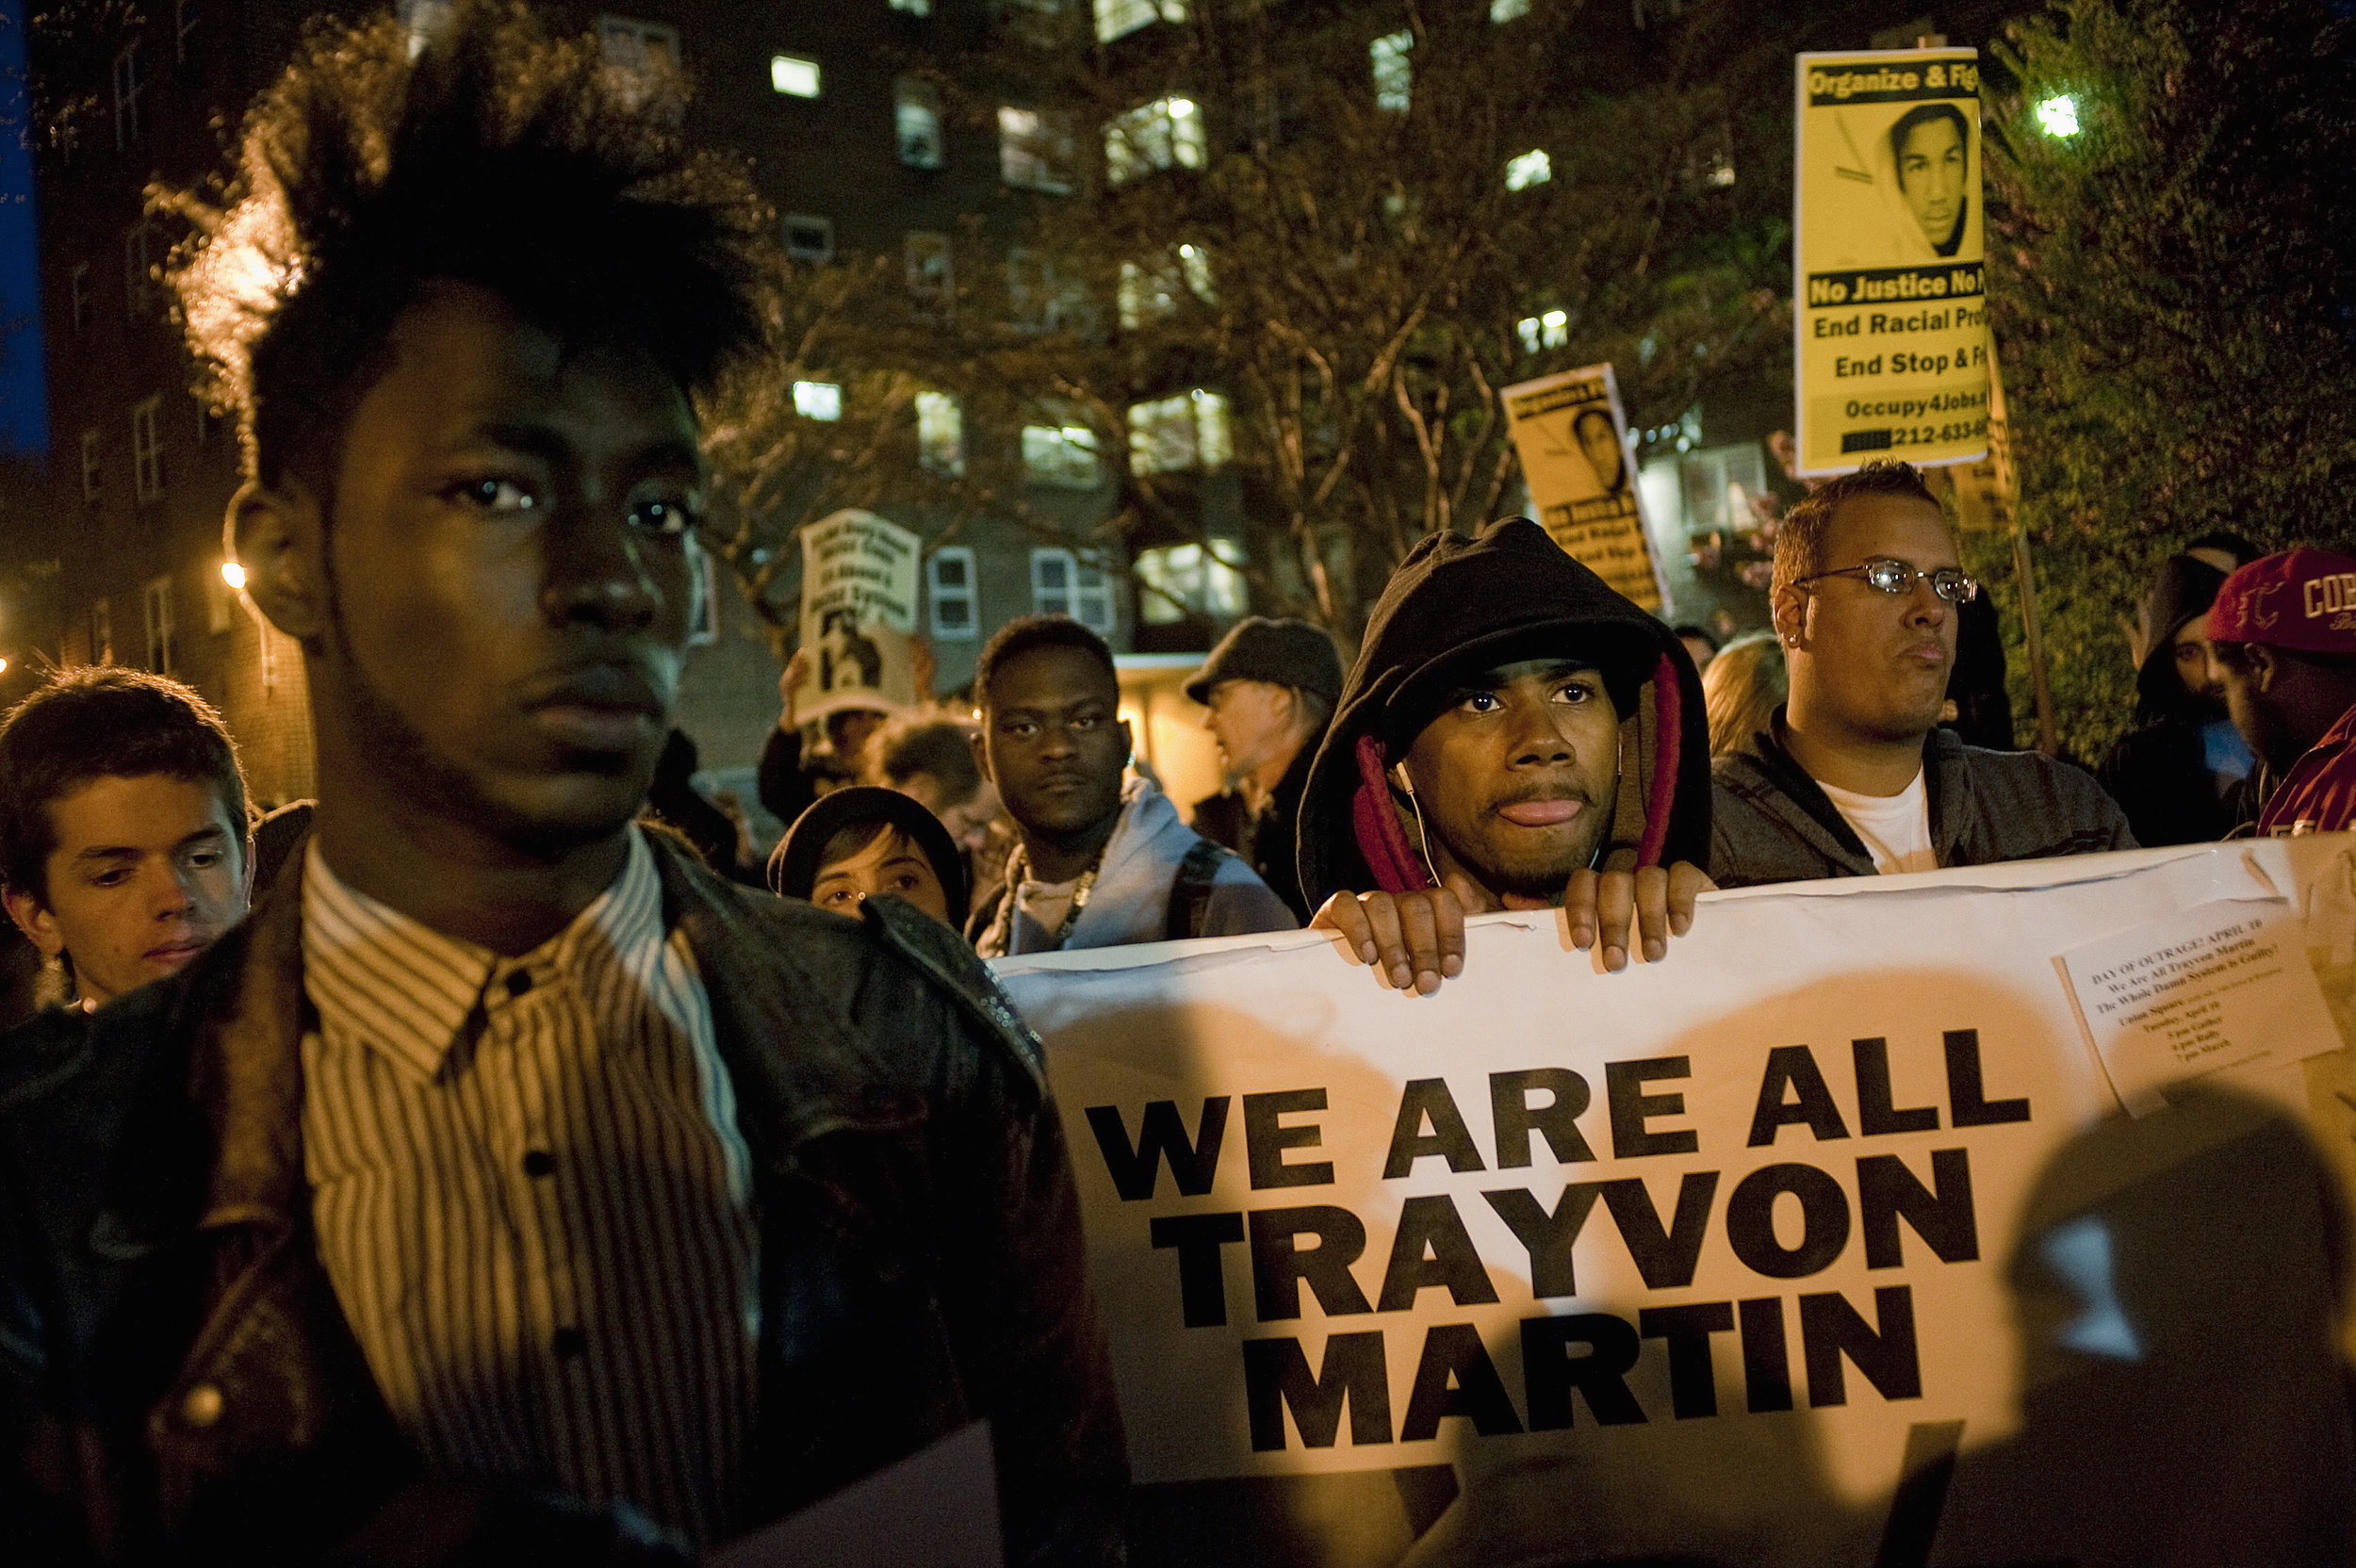 Demonstrators march in a rally in support of slain teenager Trayvon Martin in New York April 10, 2012. The February 26 killing of the black teenager by neighborhood watch captain George Zimmerman, a Hispanic man, has triggered protests around the country.